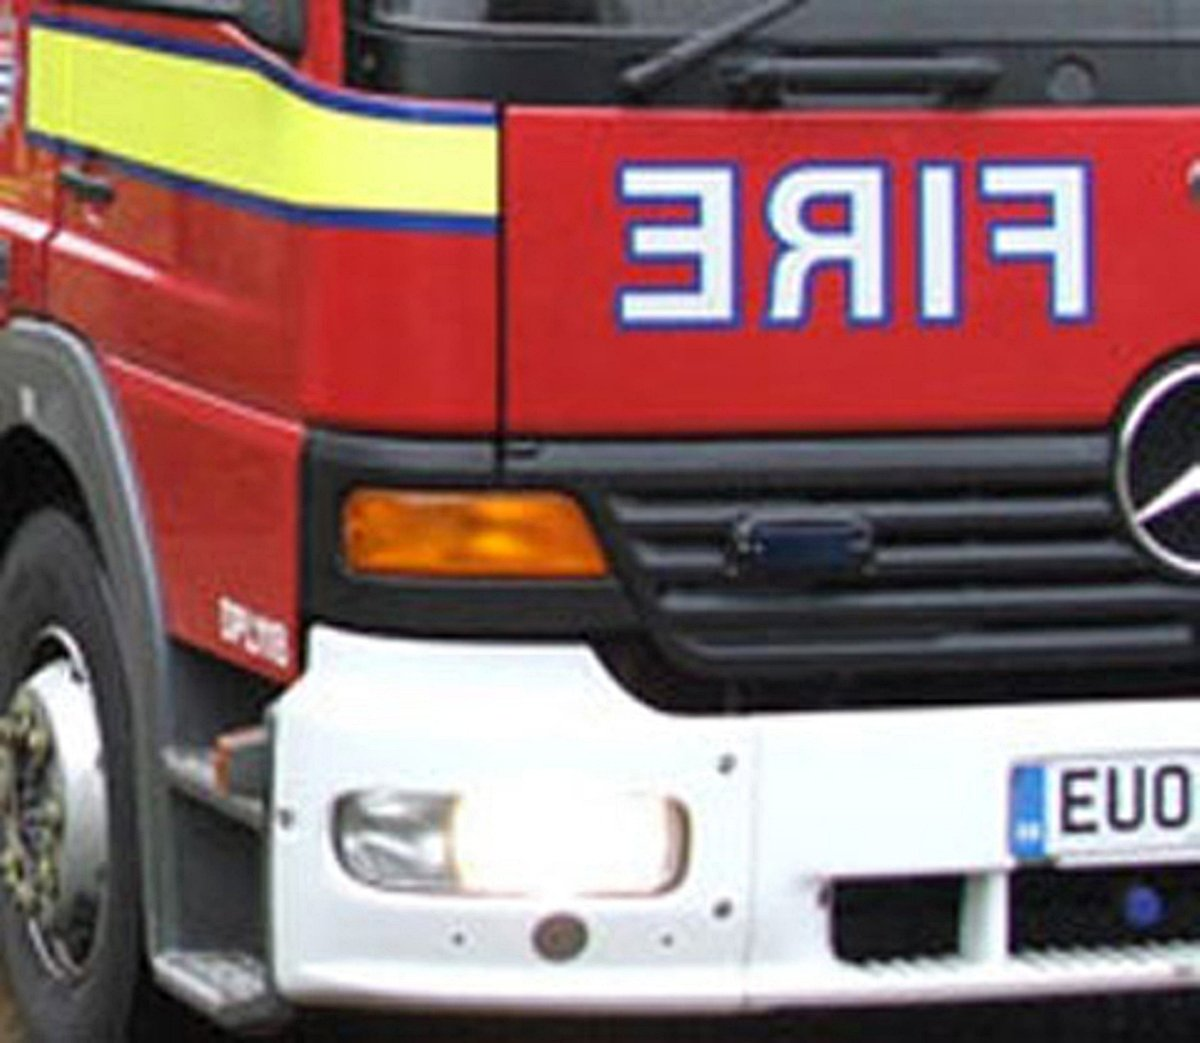 Early morning blaze above Indian takeaway in Gosport